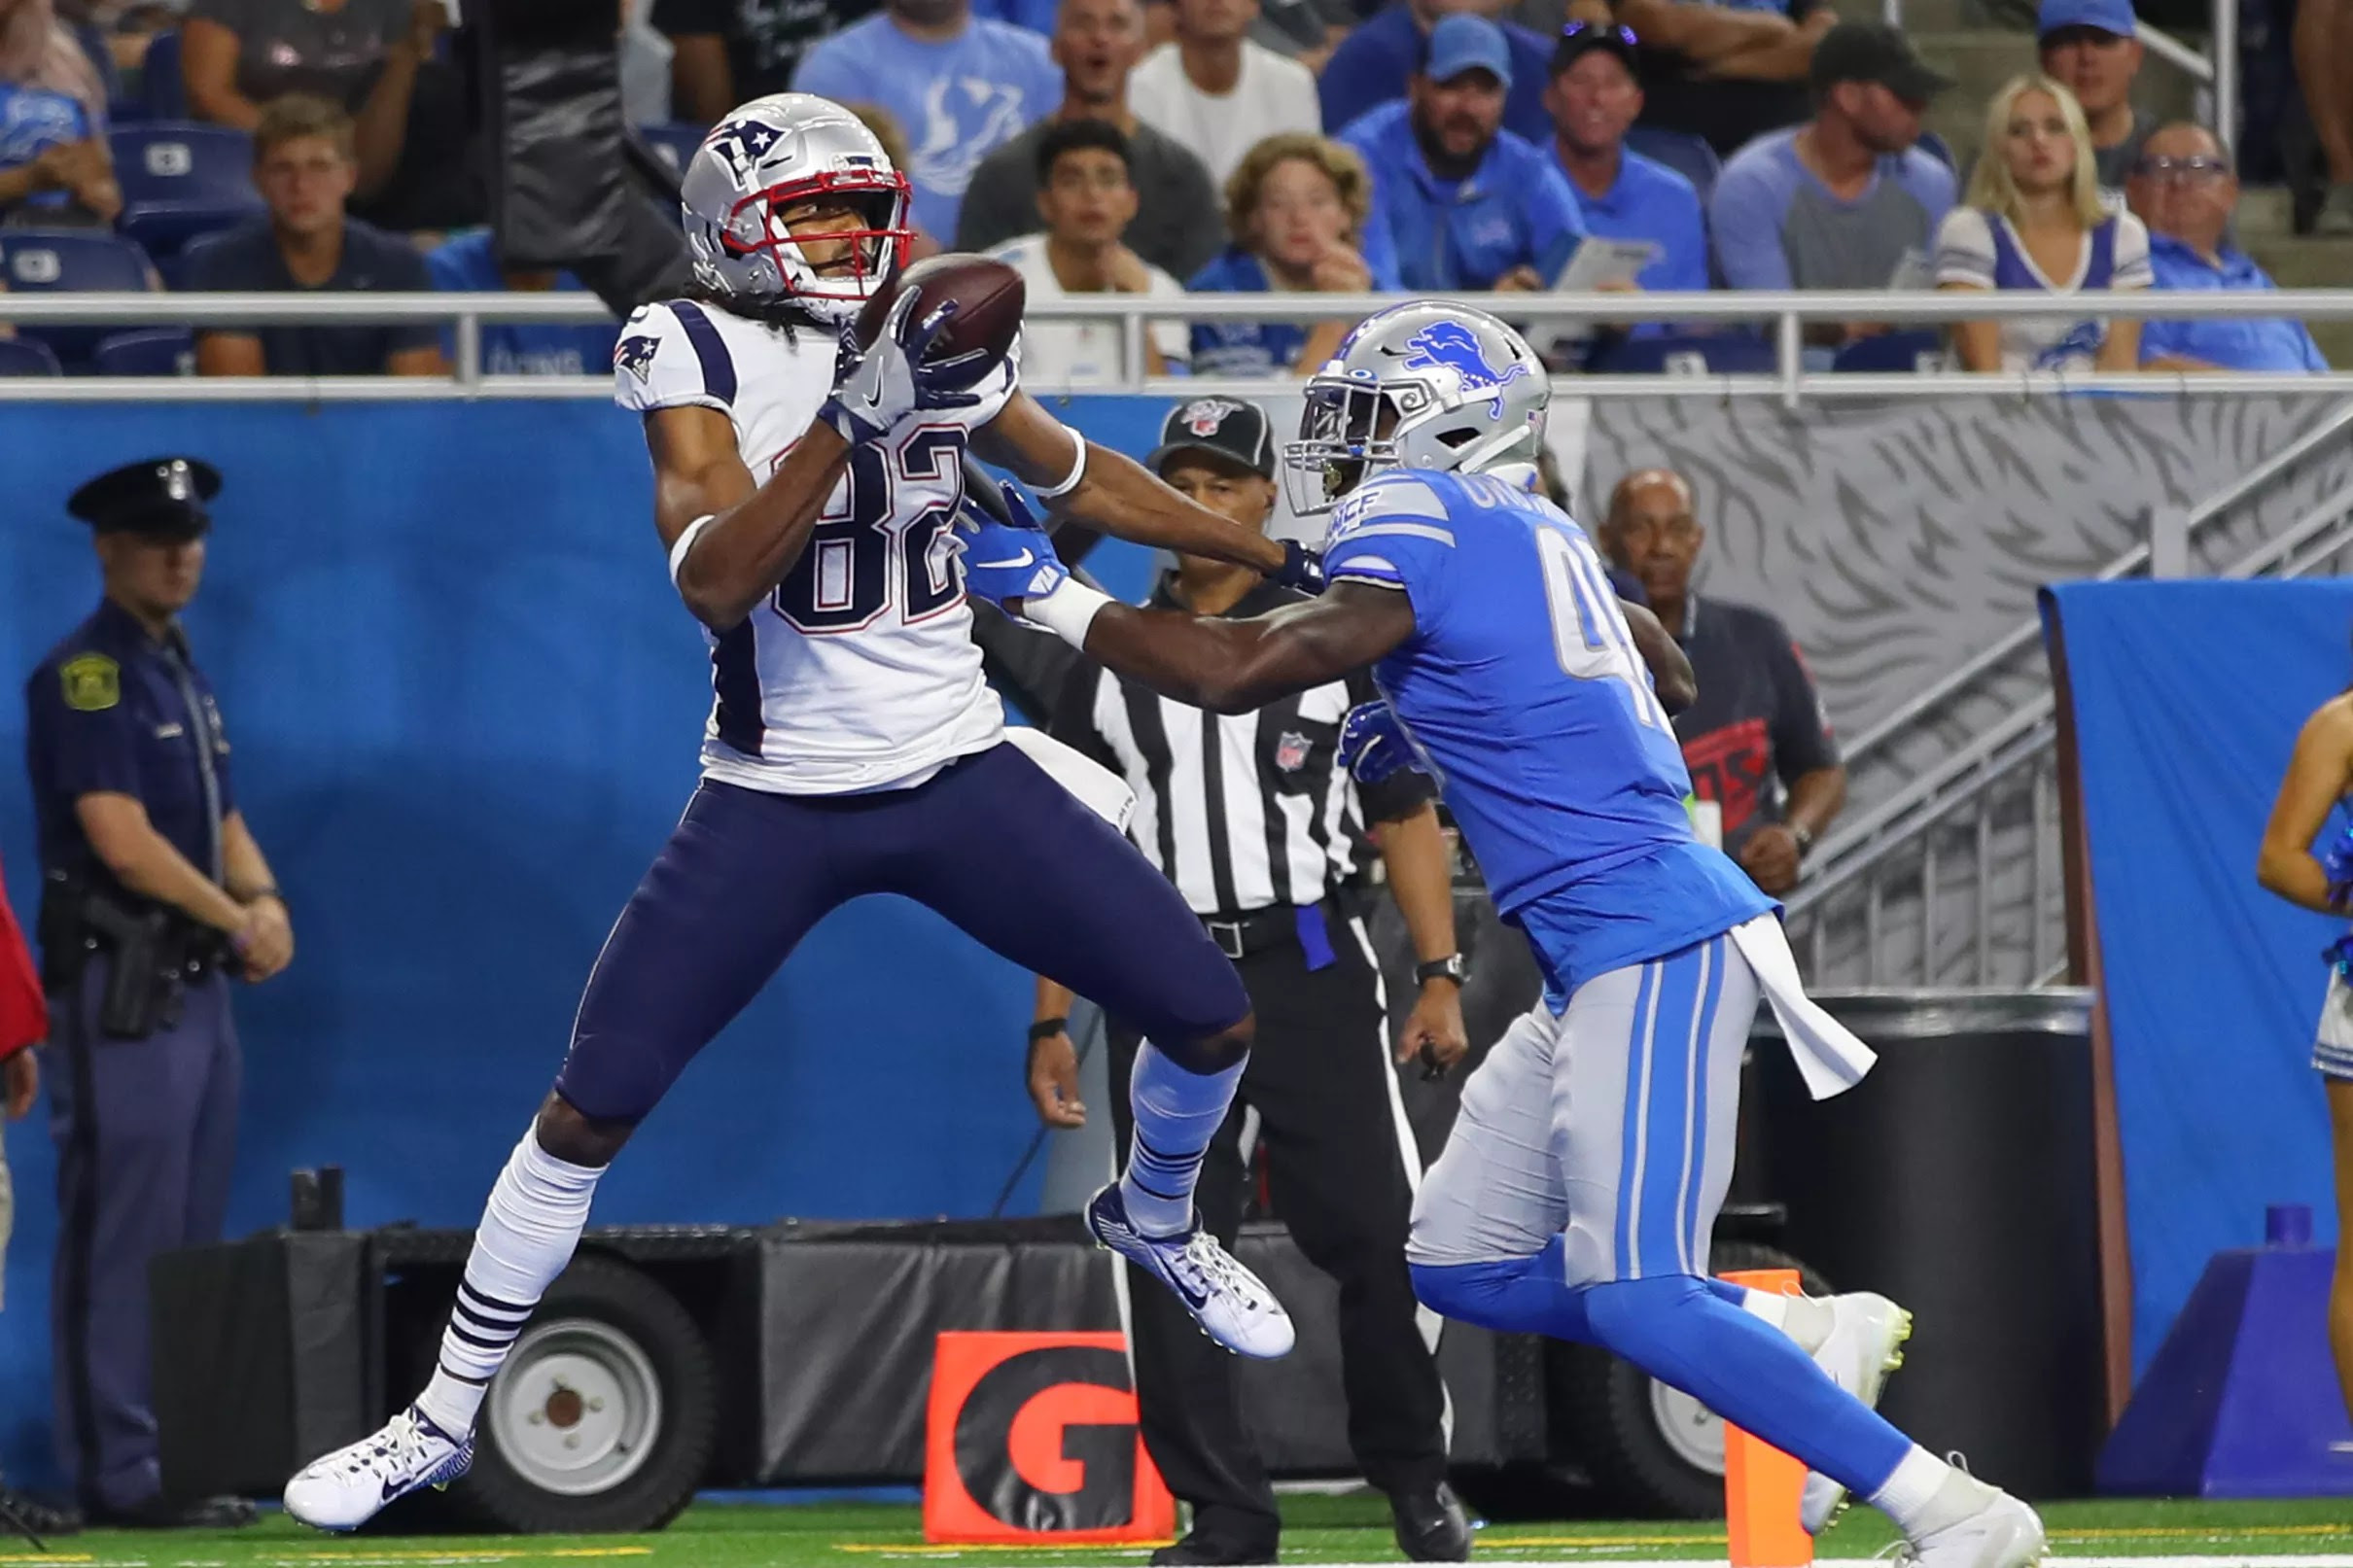 Preseason Patriots vs Lions: Relive the highlights from ...